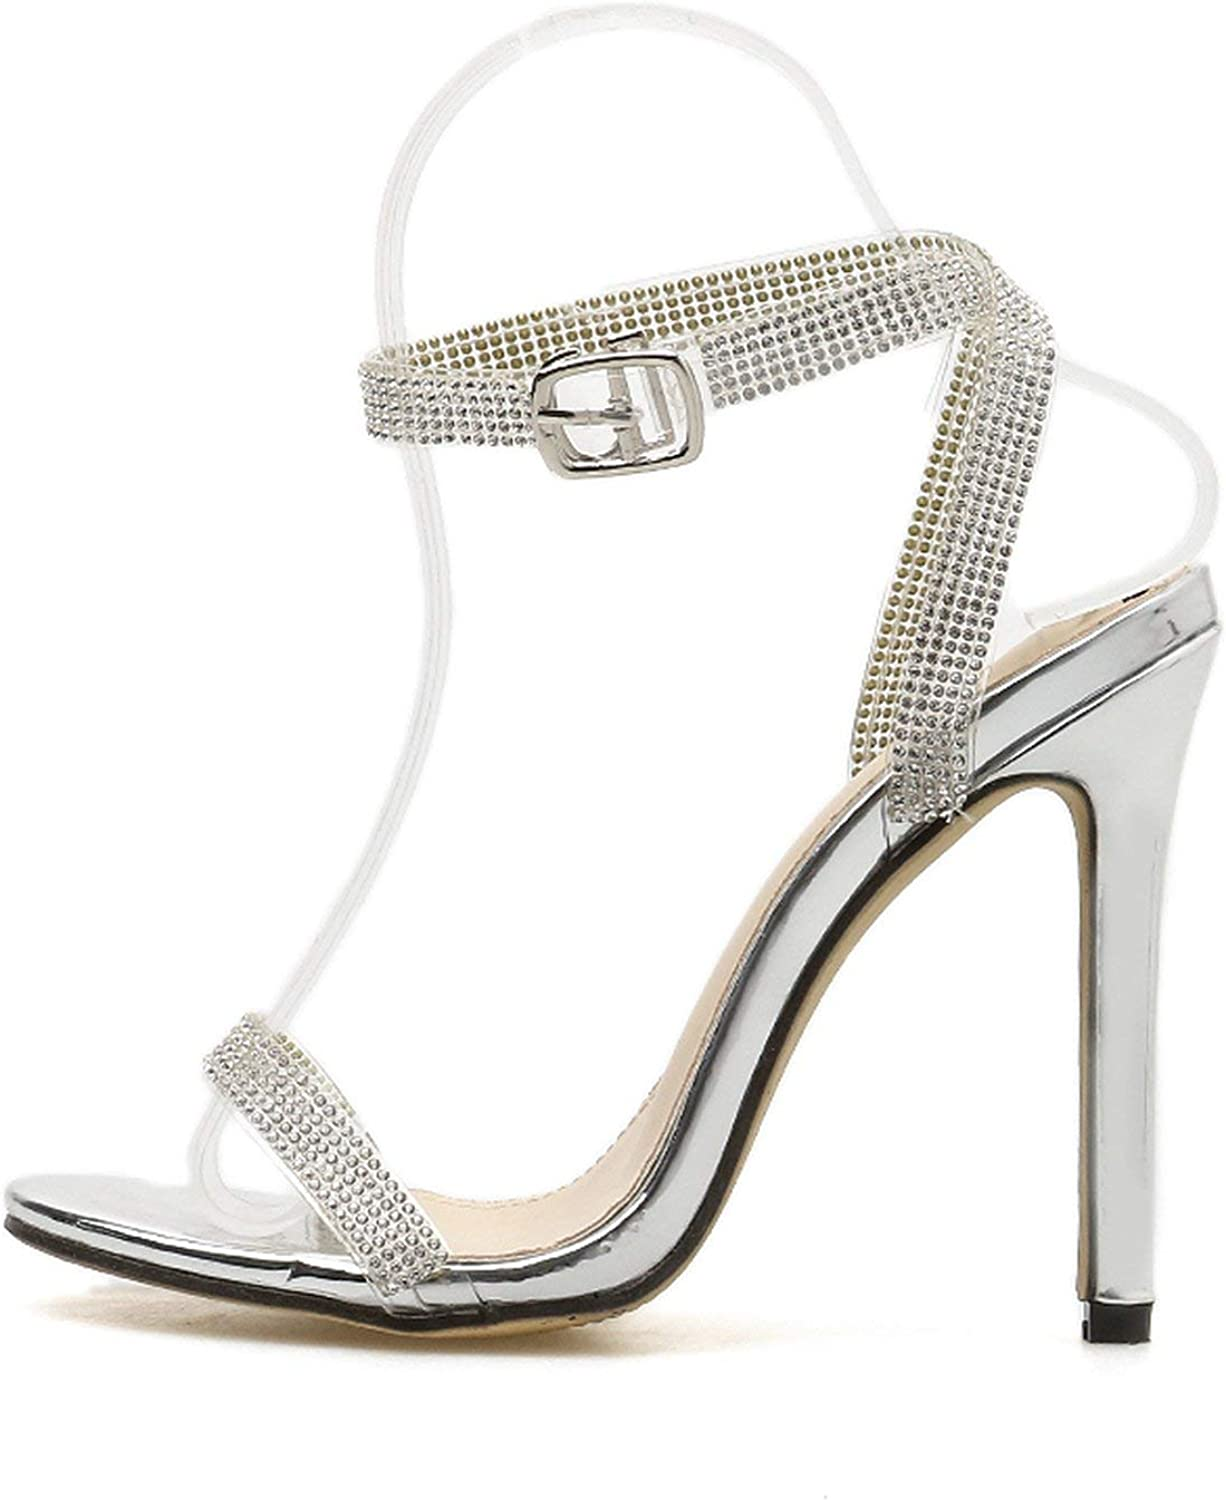 Our ideas Crystal High Heels Sandals Sexy Bling Thin Heel Women Sandals Elegant Party Wedding shoes Women Ankle Strap